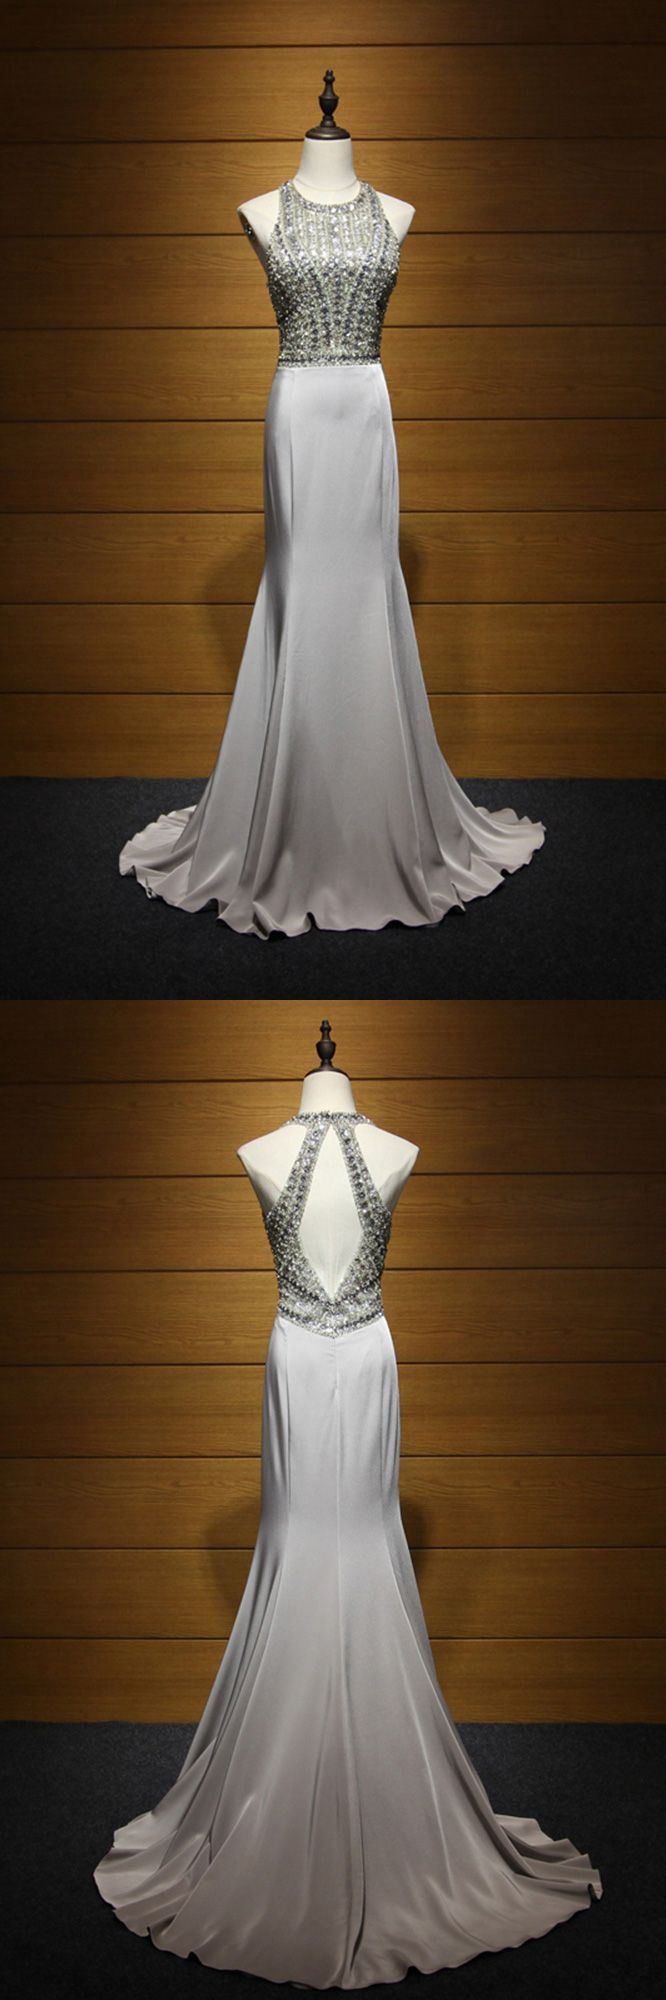 Formal Beaded Long Halter Prom Dress for Special Occasions